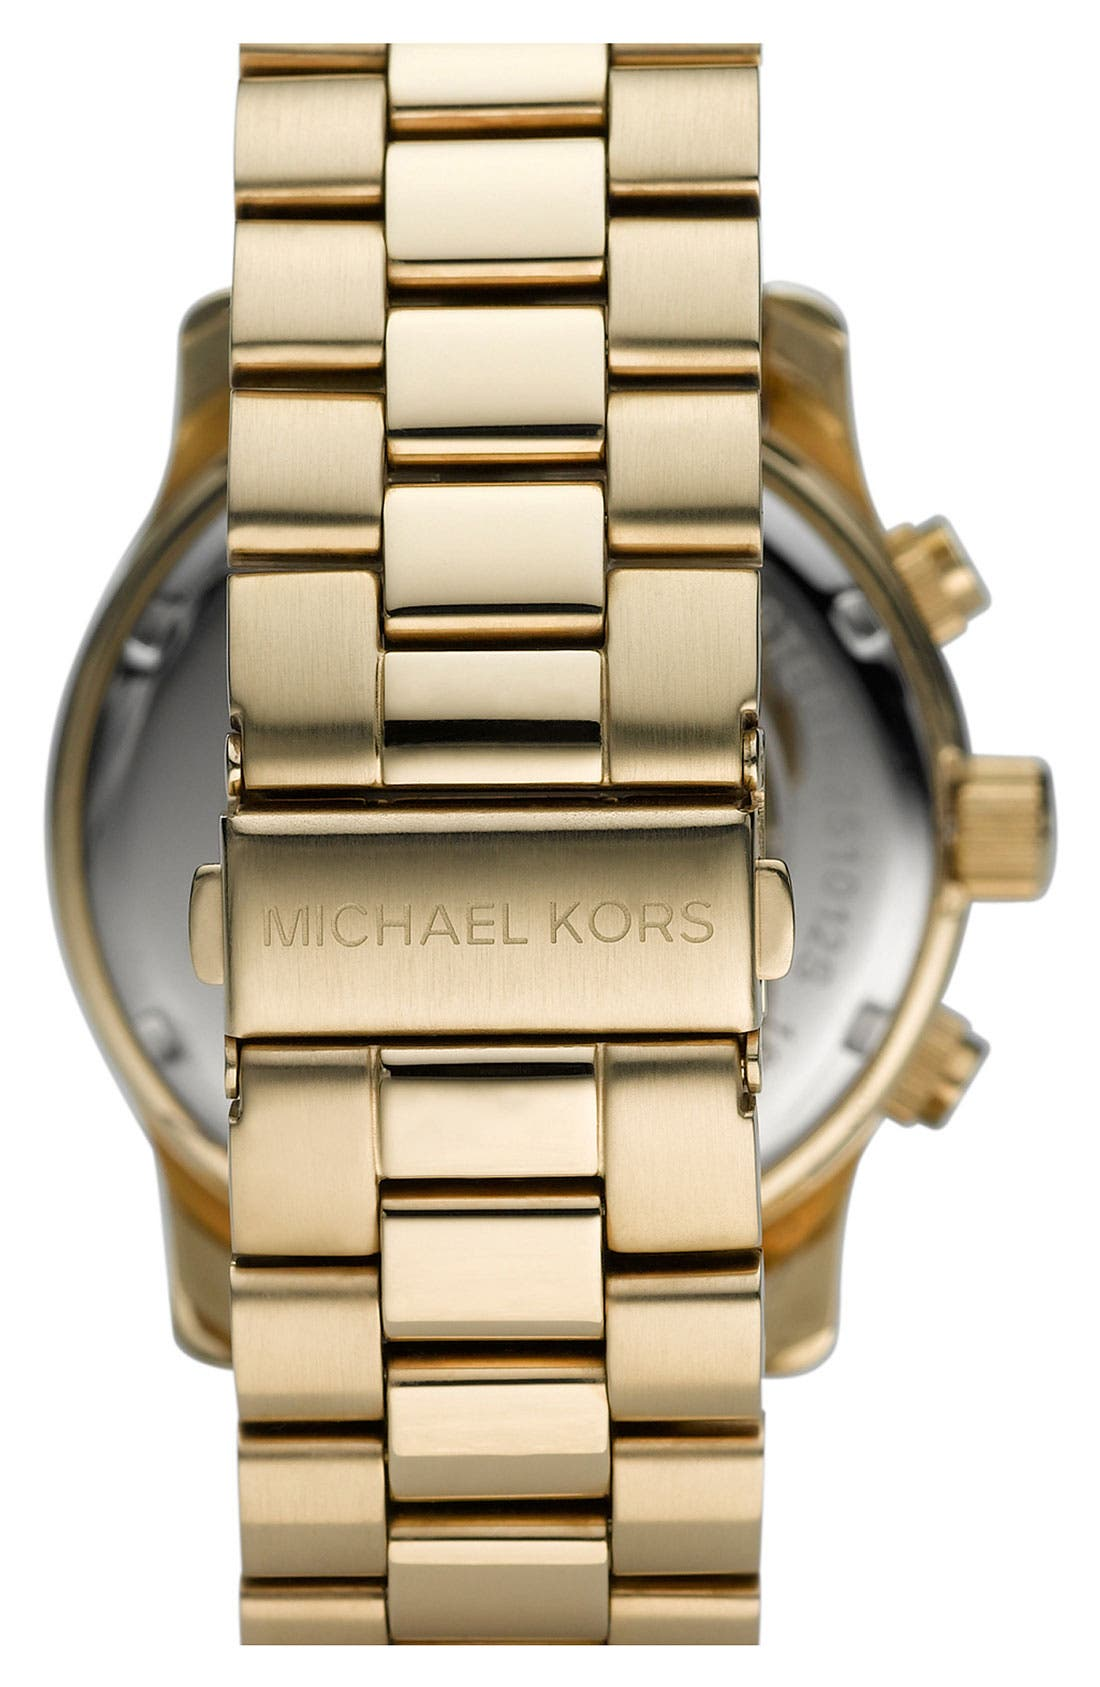 MICHAEL KORS, 'Large Runway' Chronograph Bracelet Watch, 45mm, Alternate thumbnail 5, color, GOLD